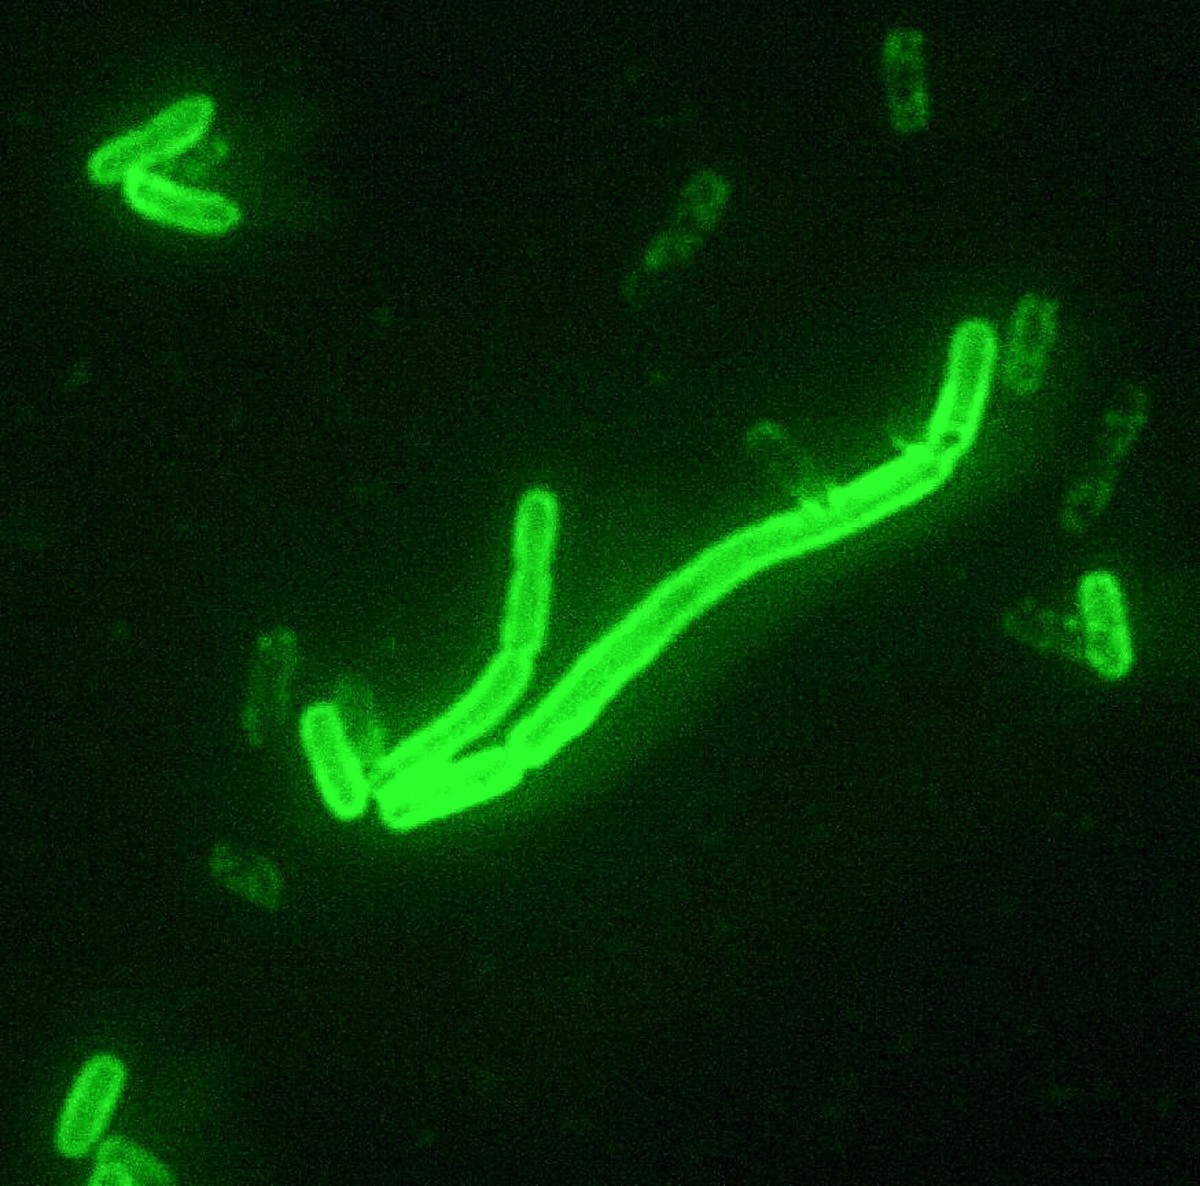 Yersinia pestis cells coloured by a fluorescent stain